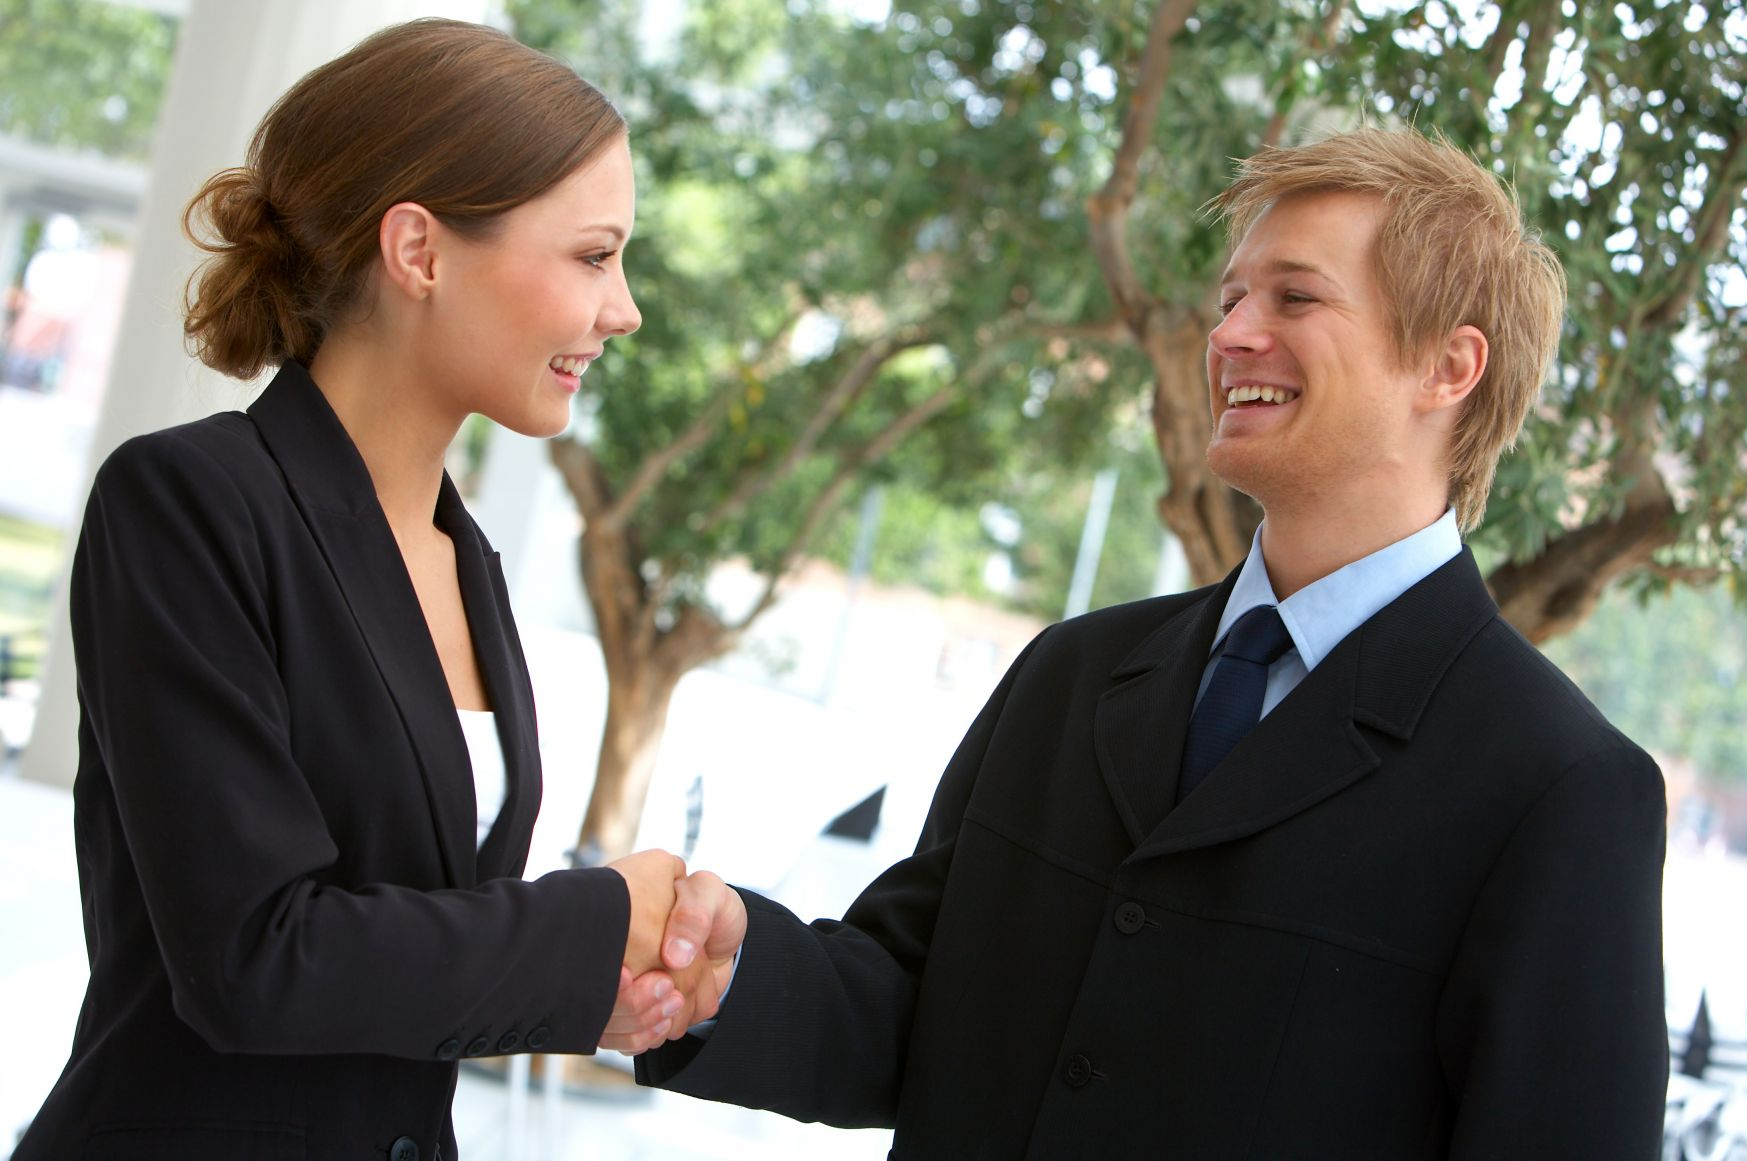 man_and_woman_shaking_hands.jpg